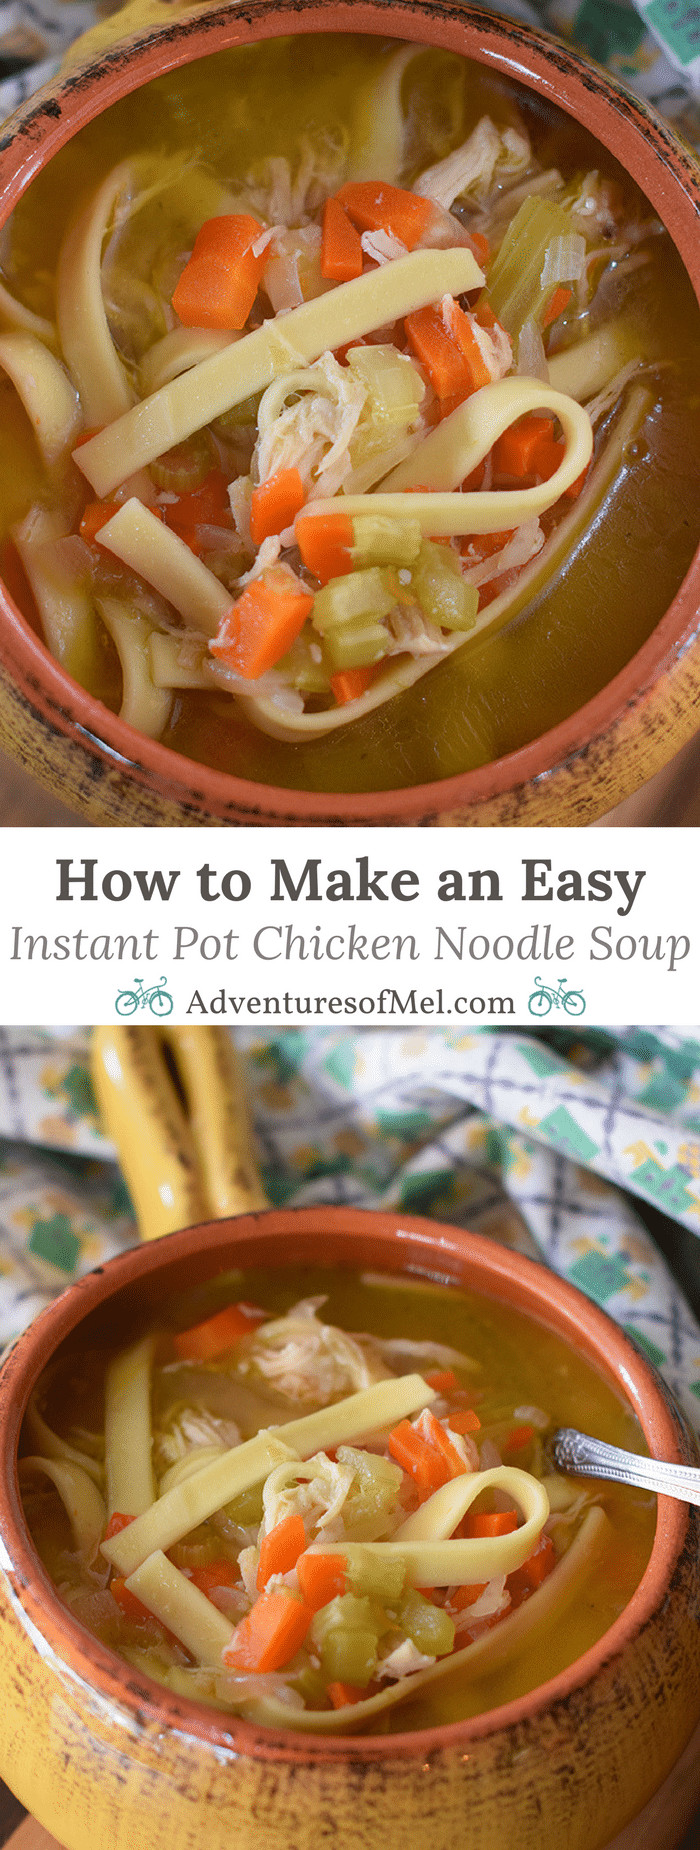 How To Make Chicken Soup  How to Make an Easy Instant Pot Chicken Noodle Soup